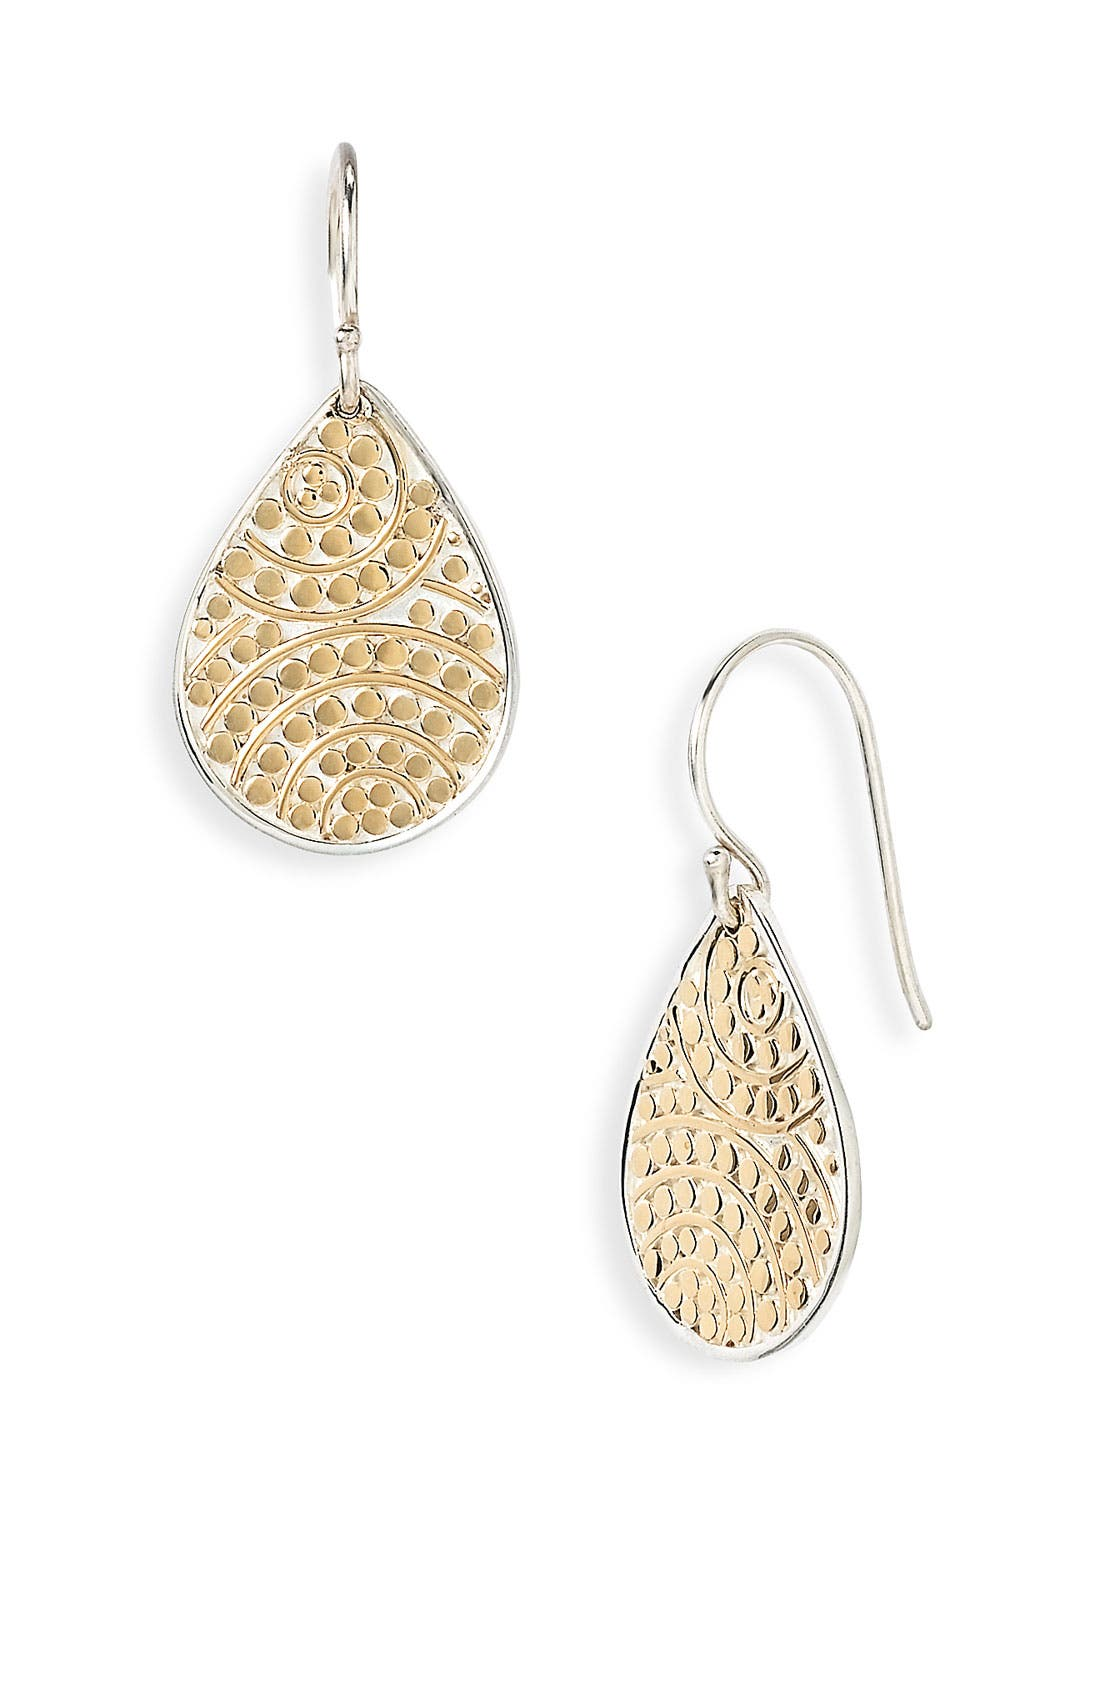 Main Image - Anna Beck 'Rajua' Small Teardrop Earrings